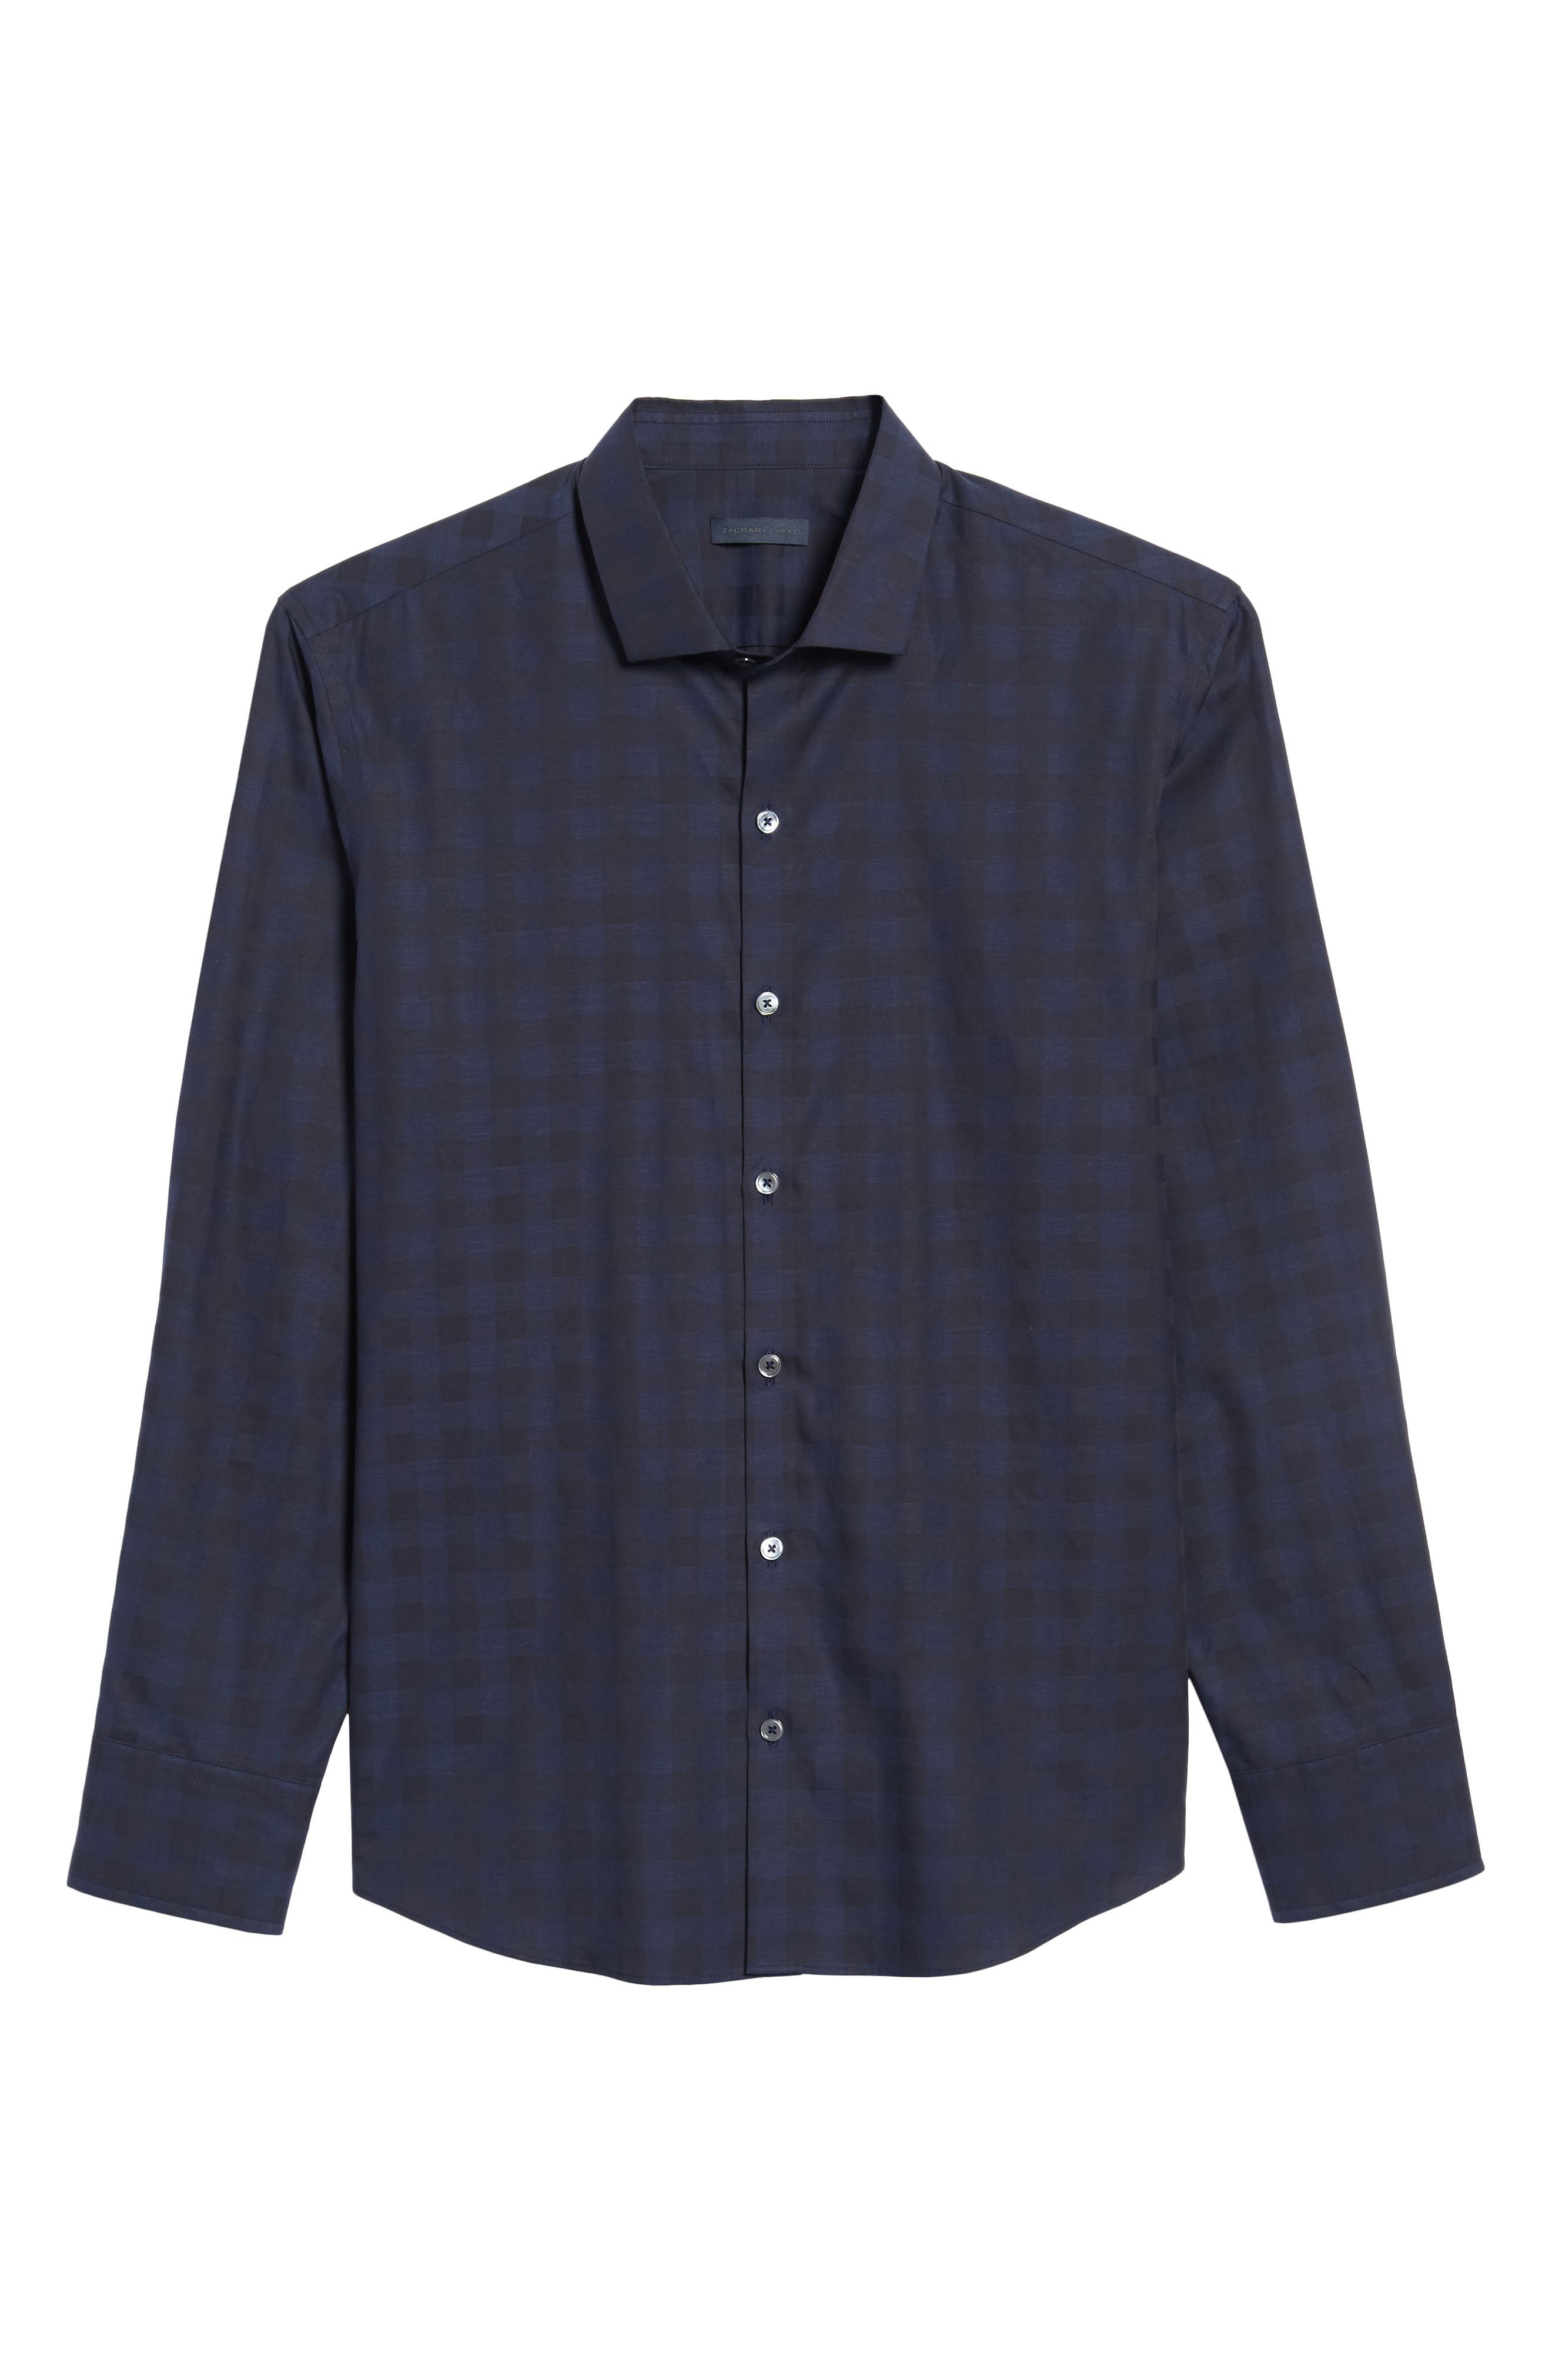 Torres Check Sport Shirt,                             Alternate thumbnail 6, color,                             410